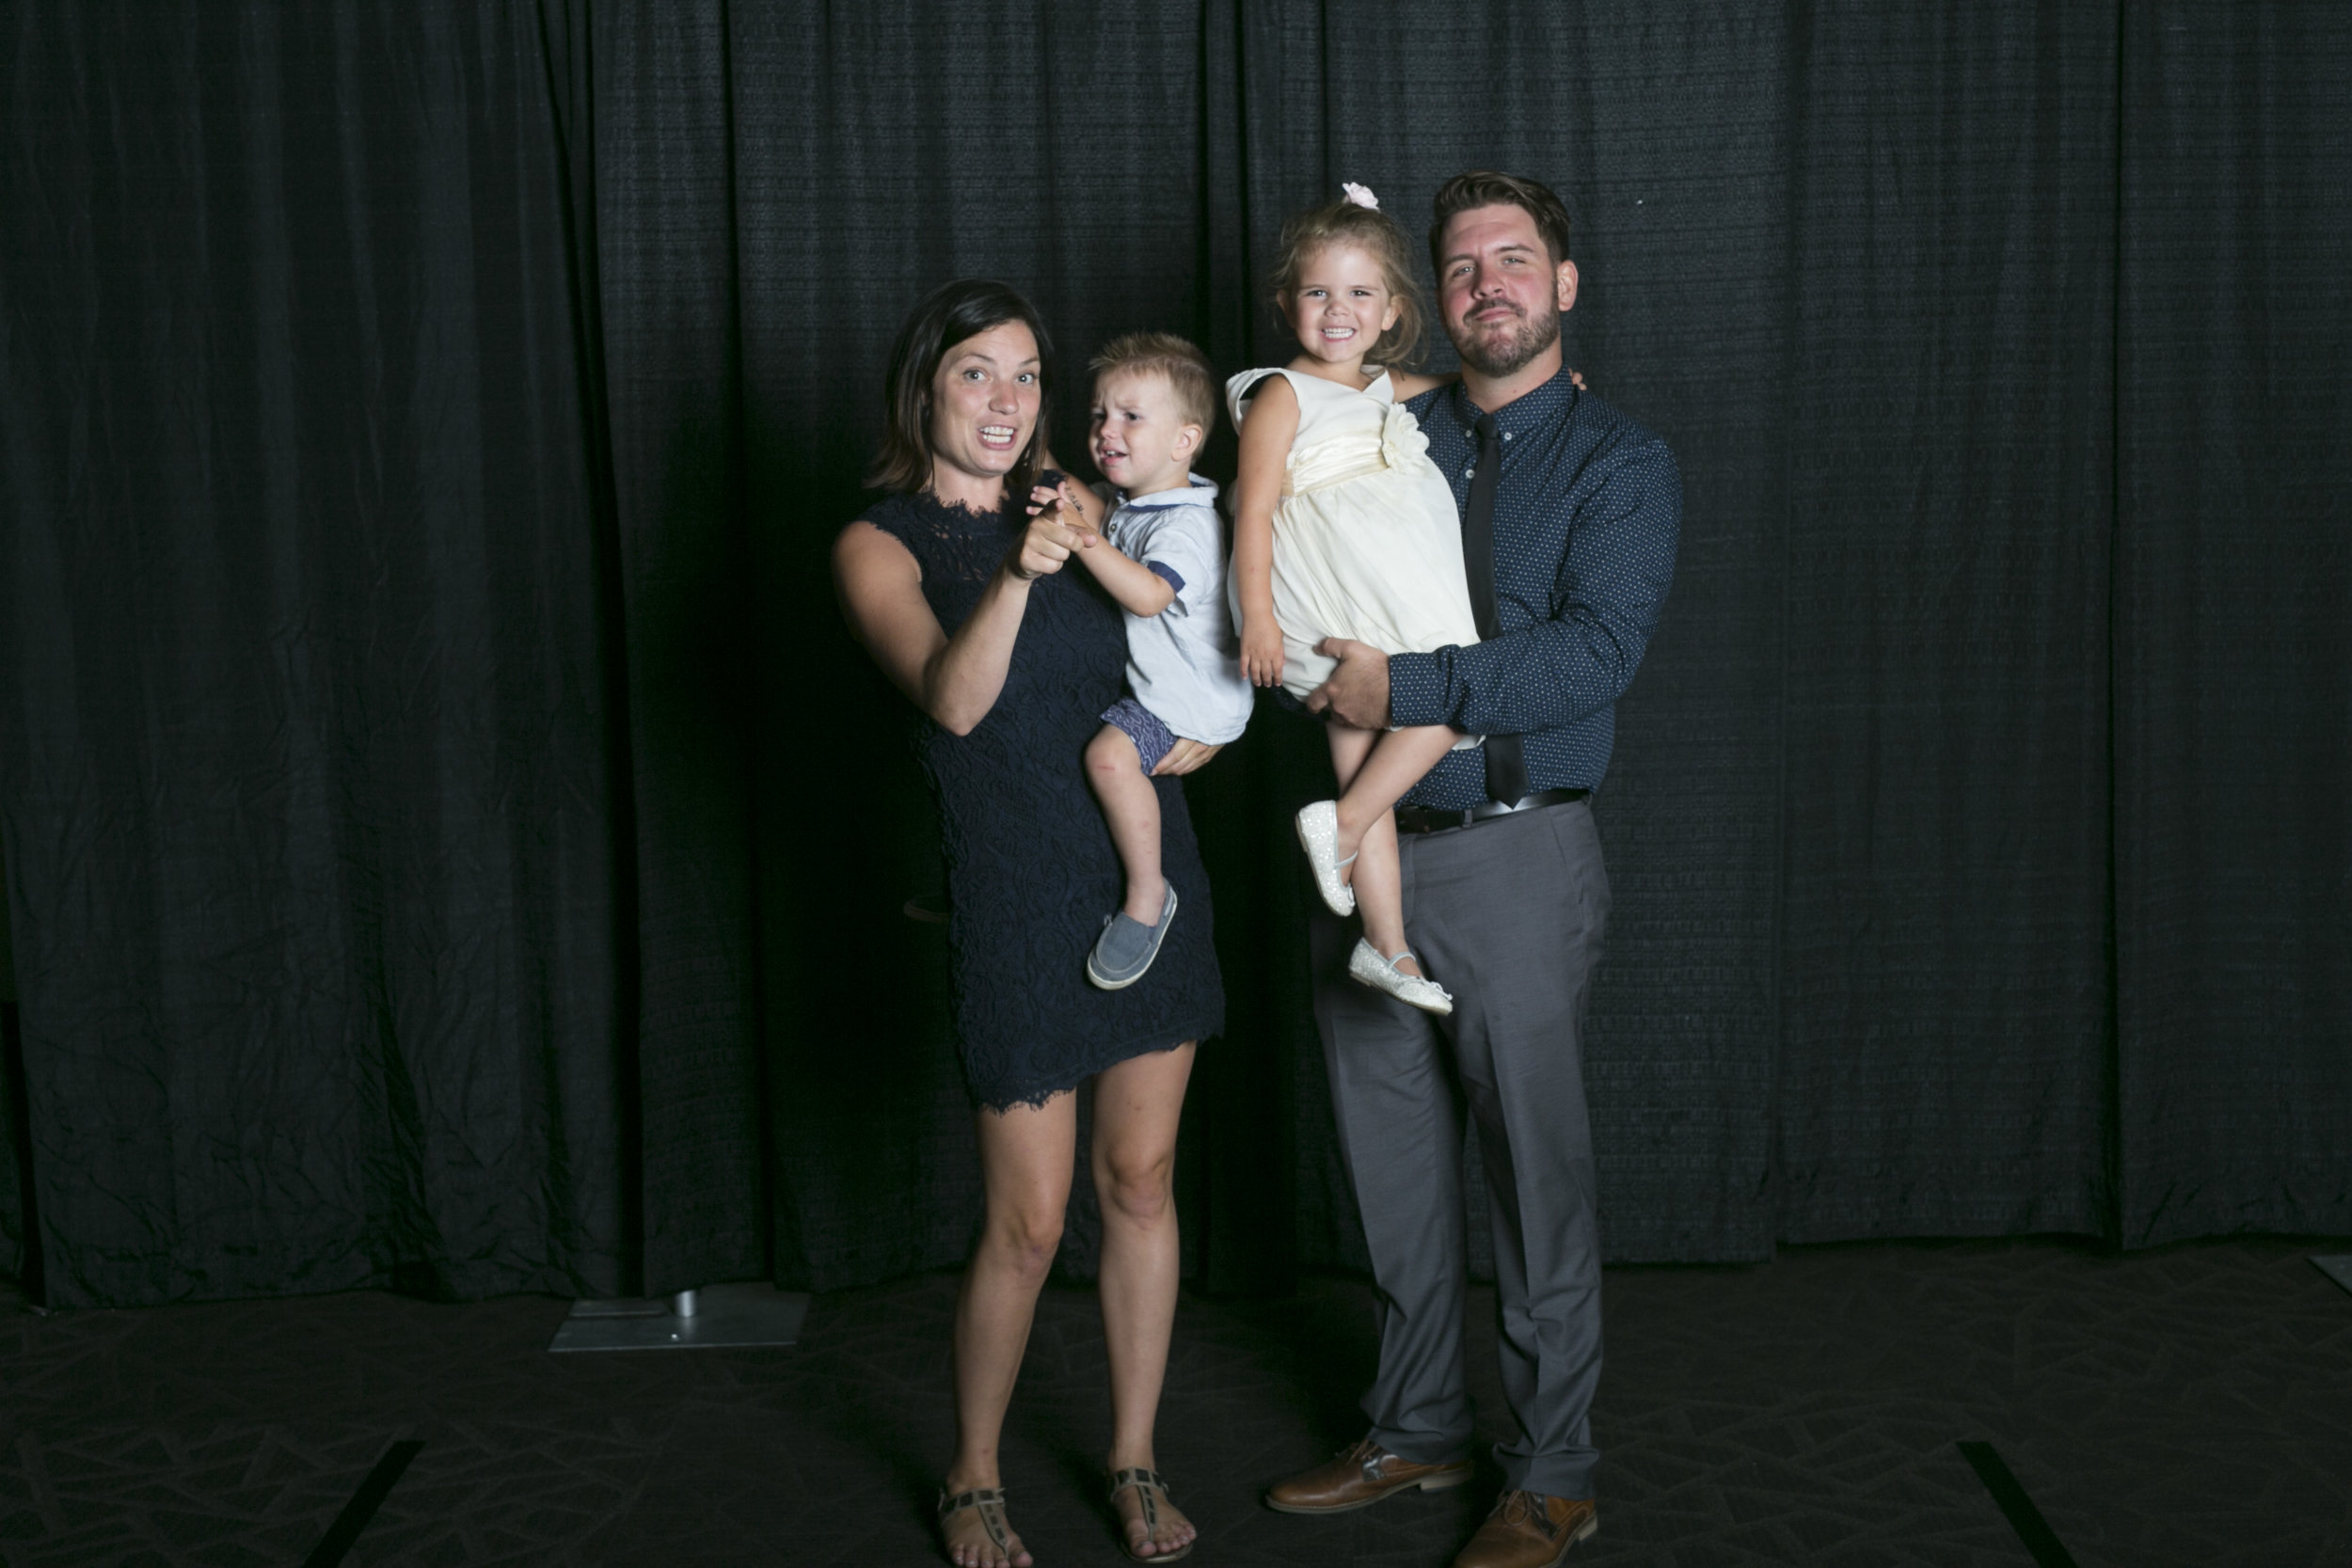 wedding photo booth-147.jpg